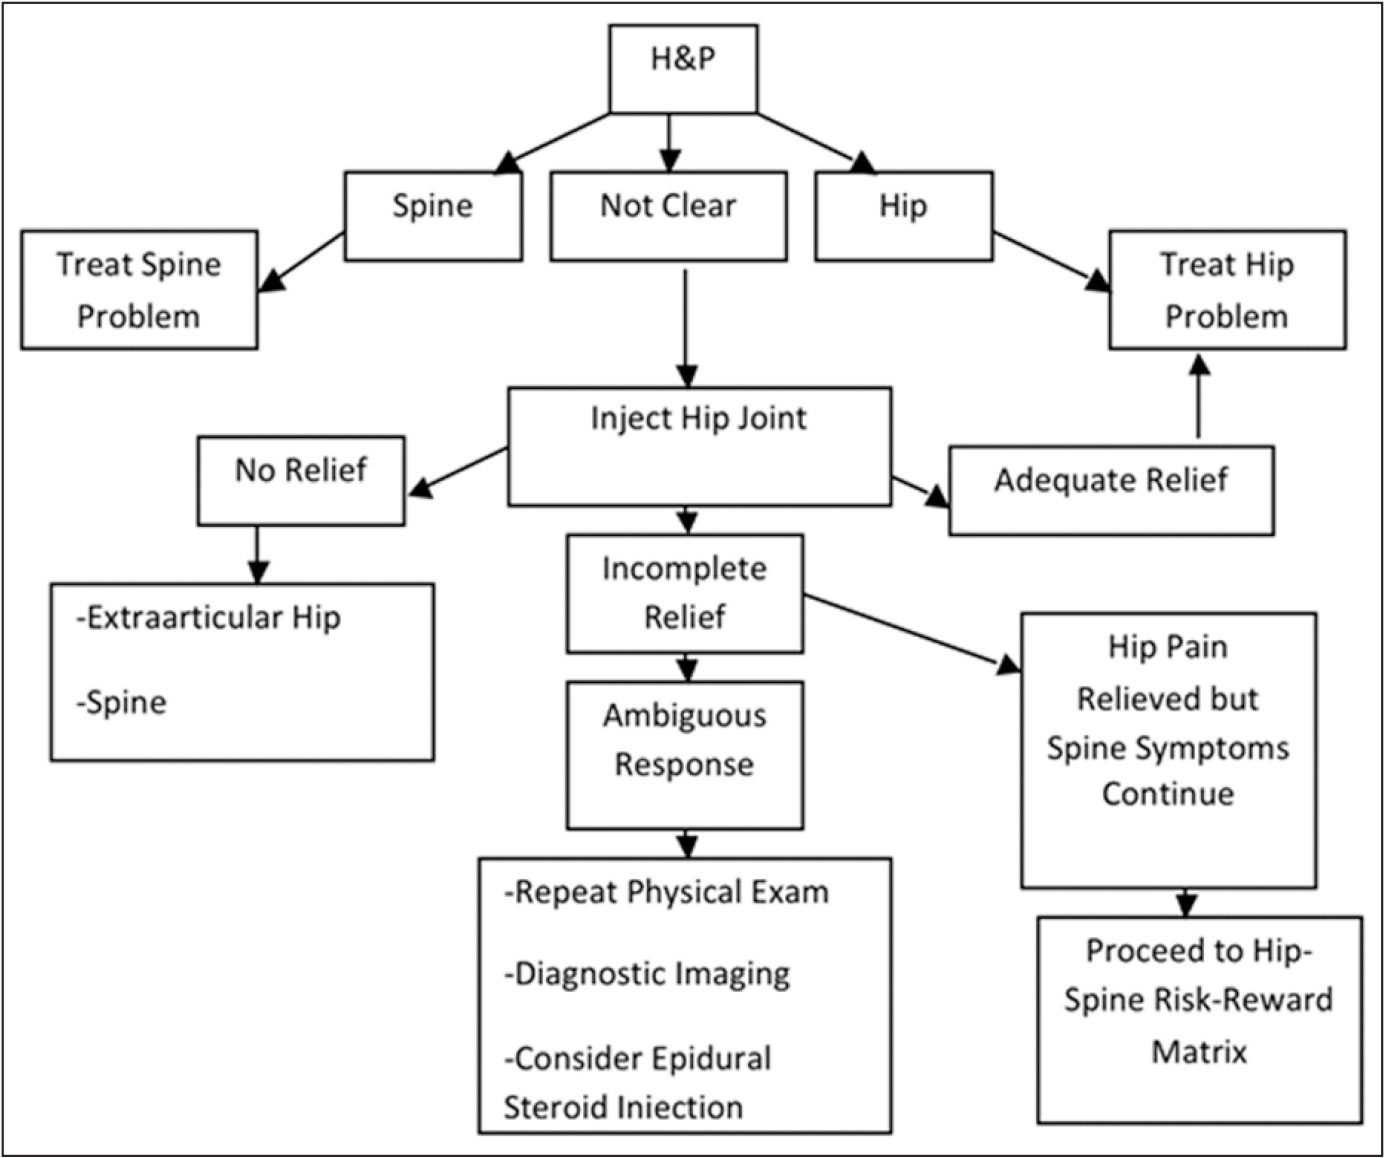 Hip-spine algorithm. Abbreviation: H&P, history and physical examination.